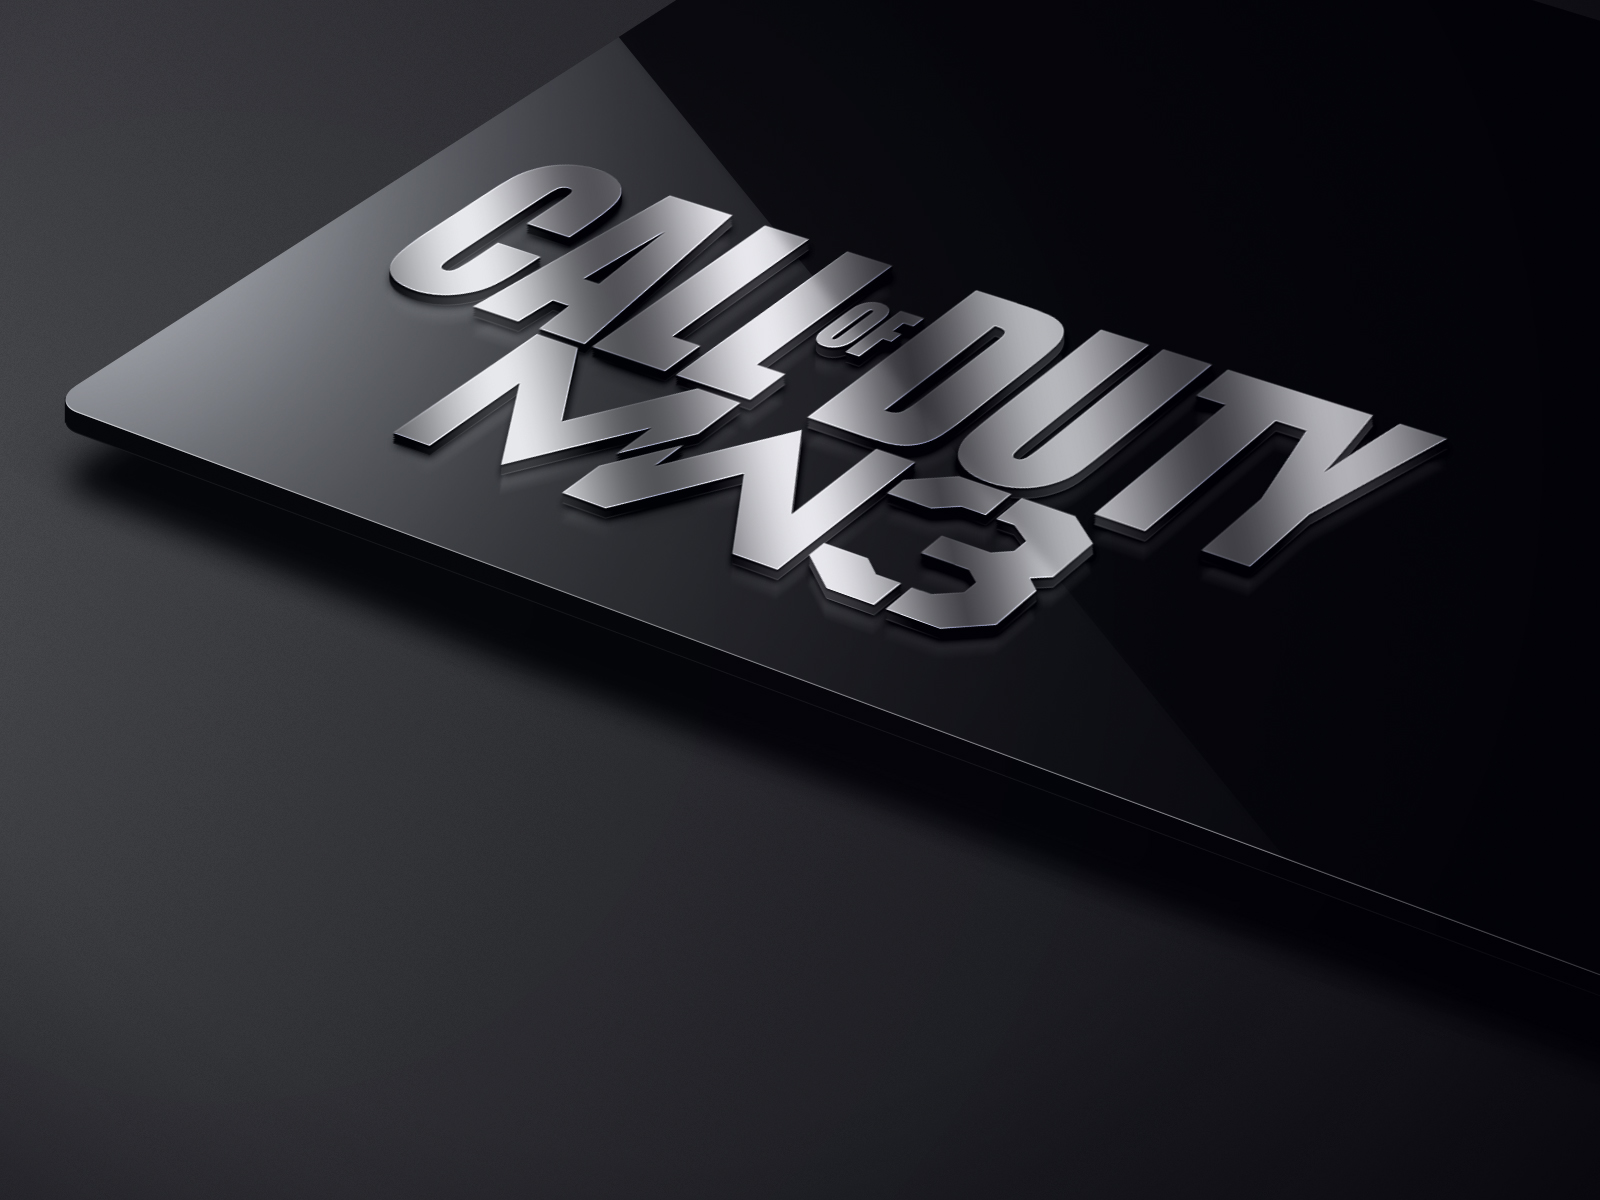 Call Of Duty Mw3 Wallpapers Call Of Duty Mw3 Stock Photos